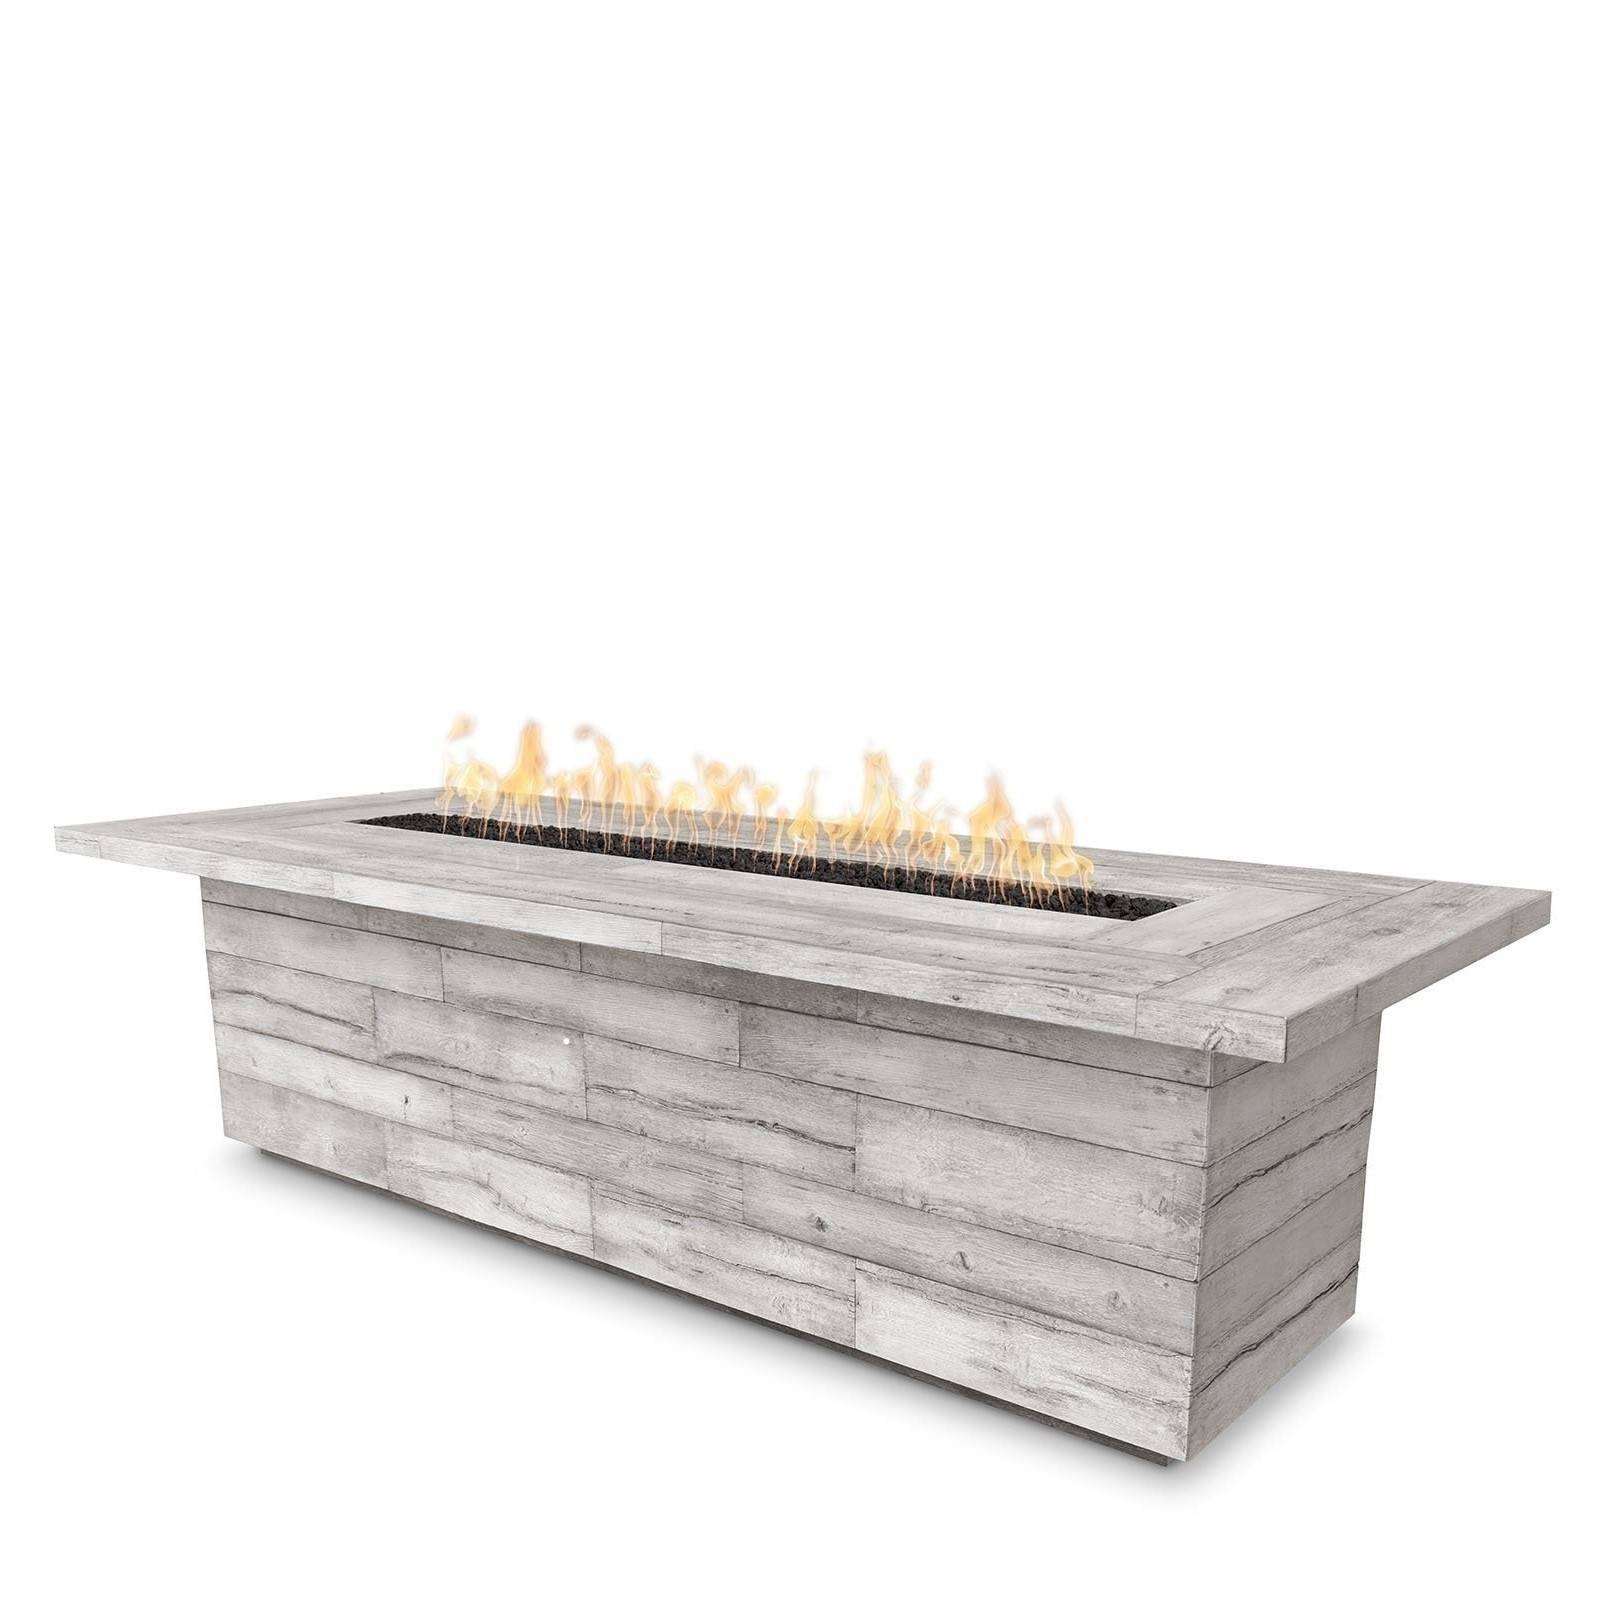 "144"" Laguna Wood Grain Concrete Fire Pit Table - Ivory"